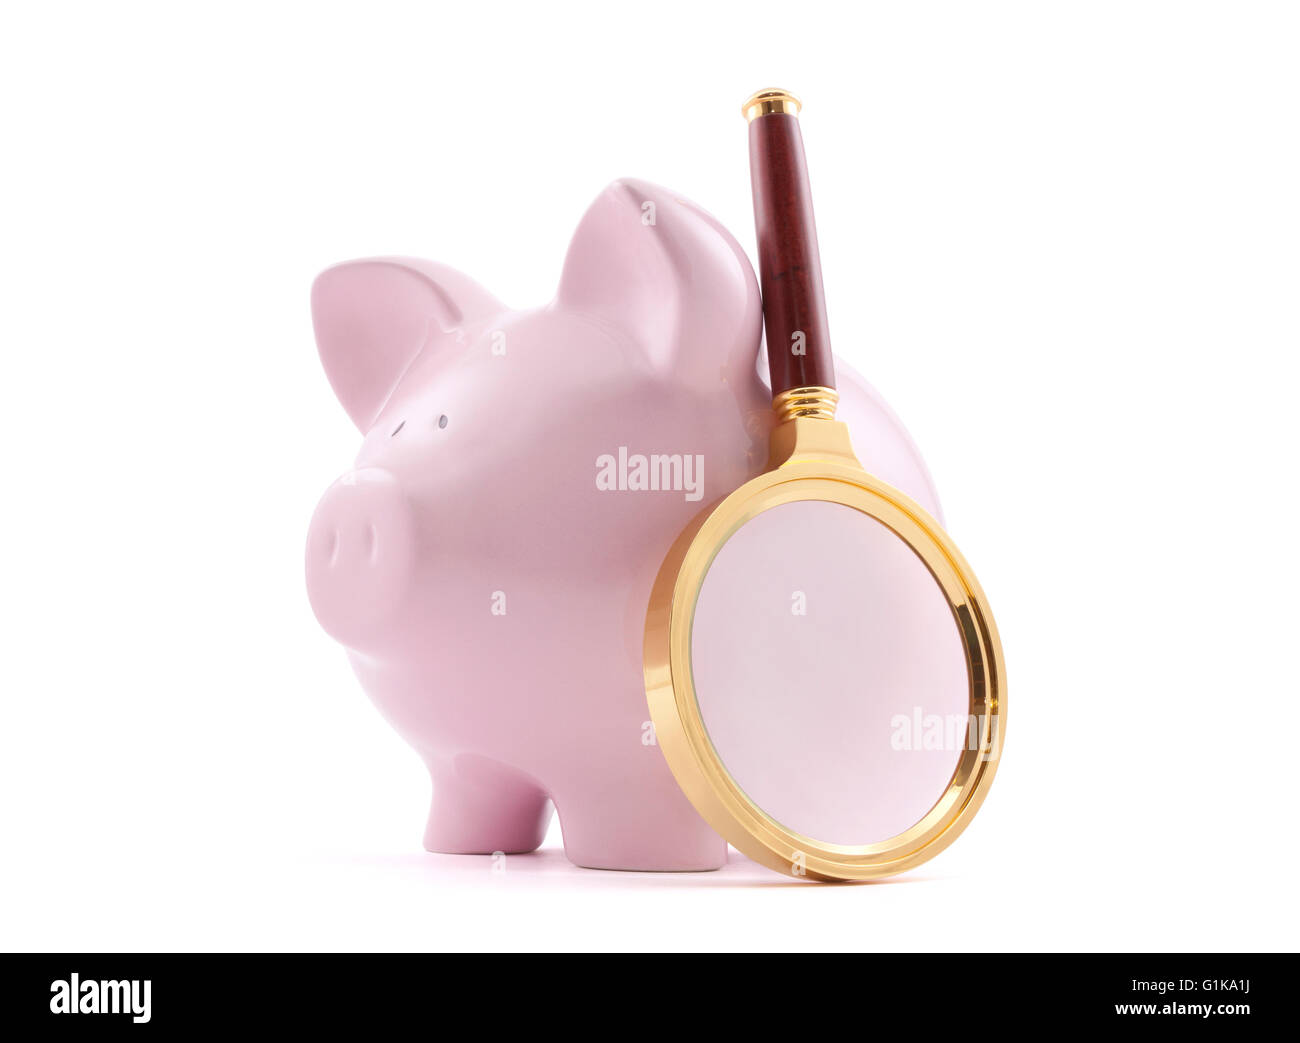 Piggy bank with magnifying glass. Clipping path included. - Stock Image